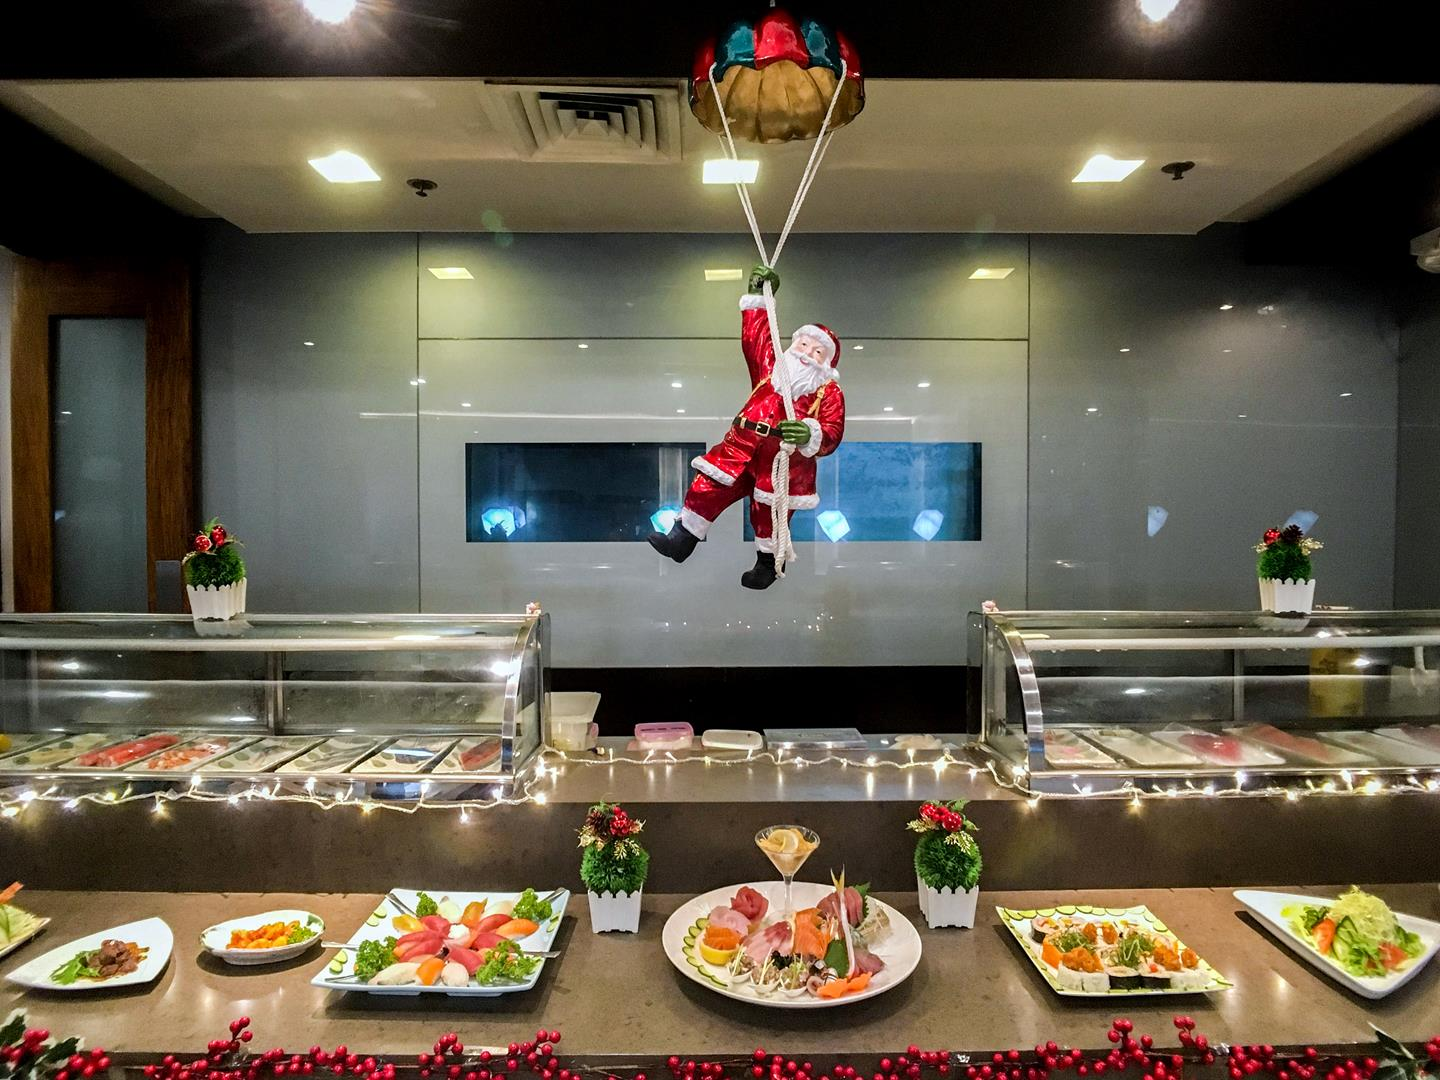 Enjoy Kitsho's Christmas buffet from 12noon 'til 4 in the afternoon!